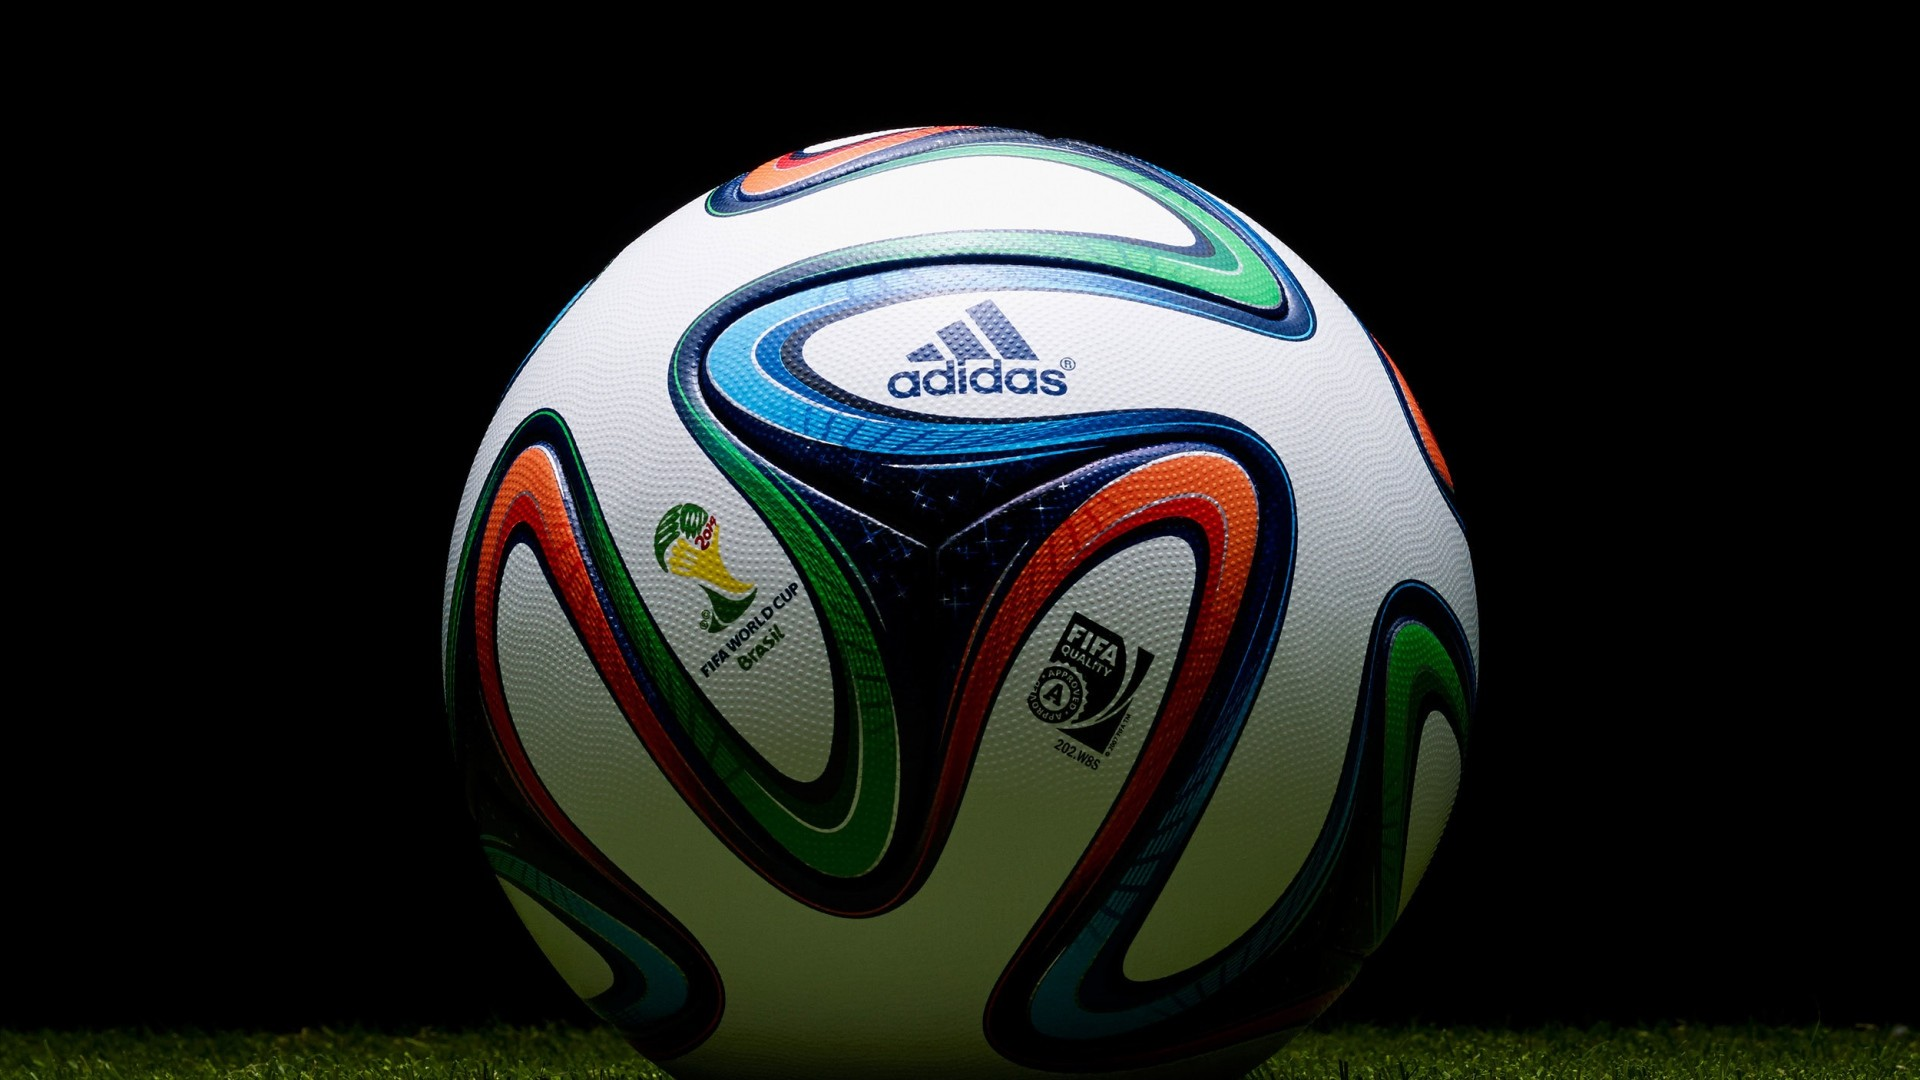 1920x1080  Wallpaper brazuca, 2014, world cup, adidas, ball, football